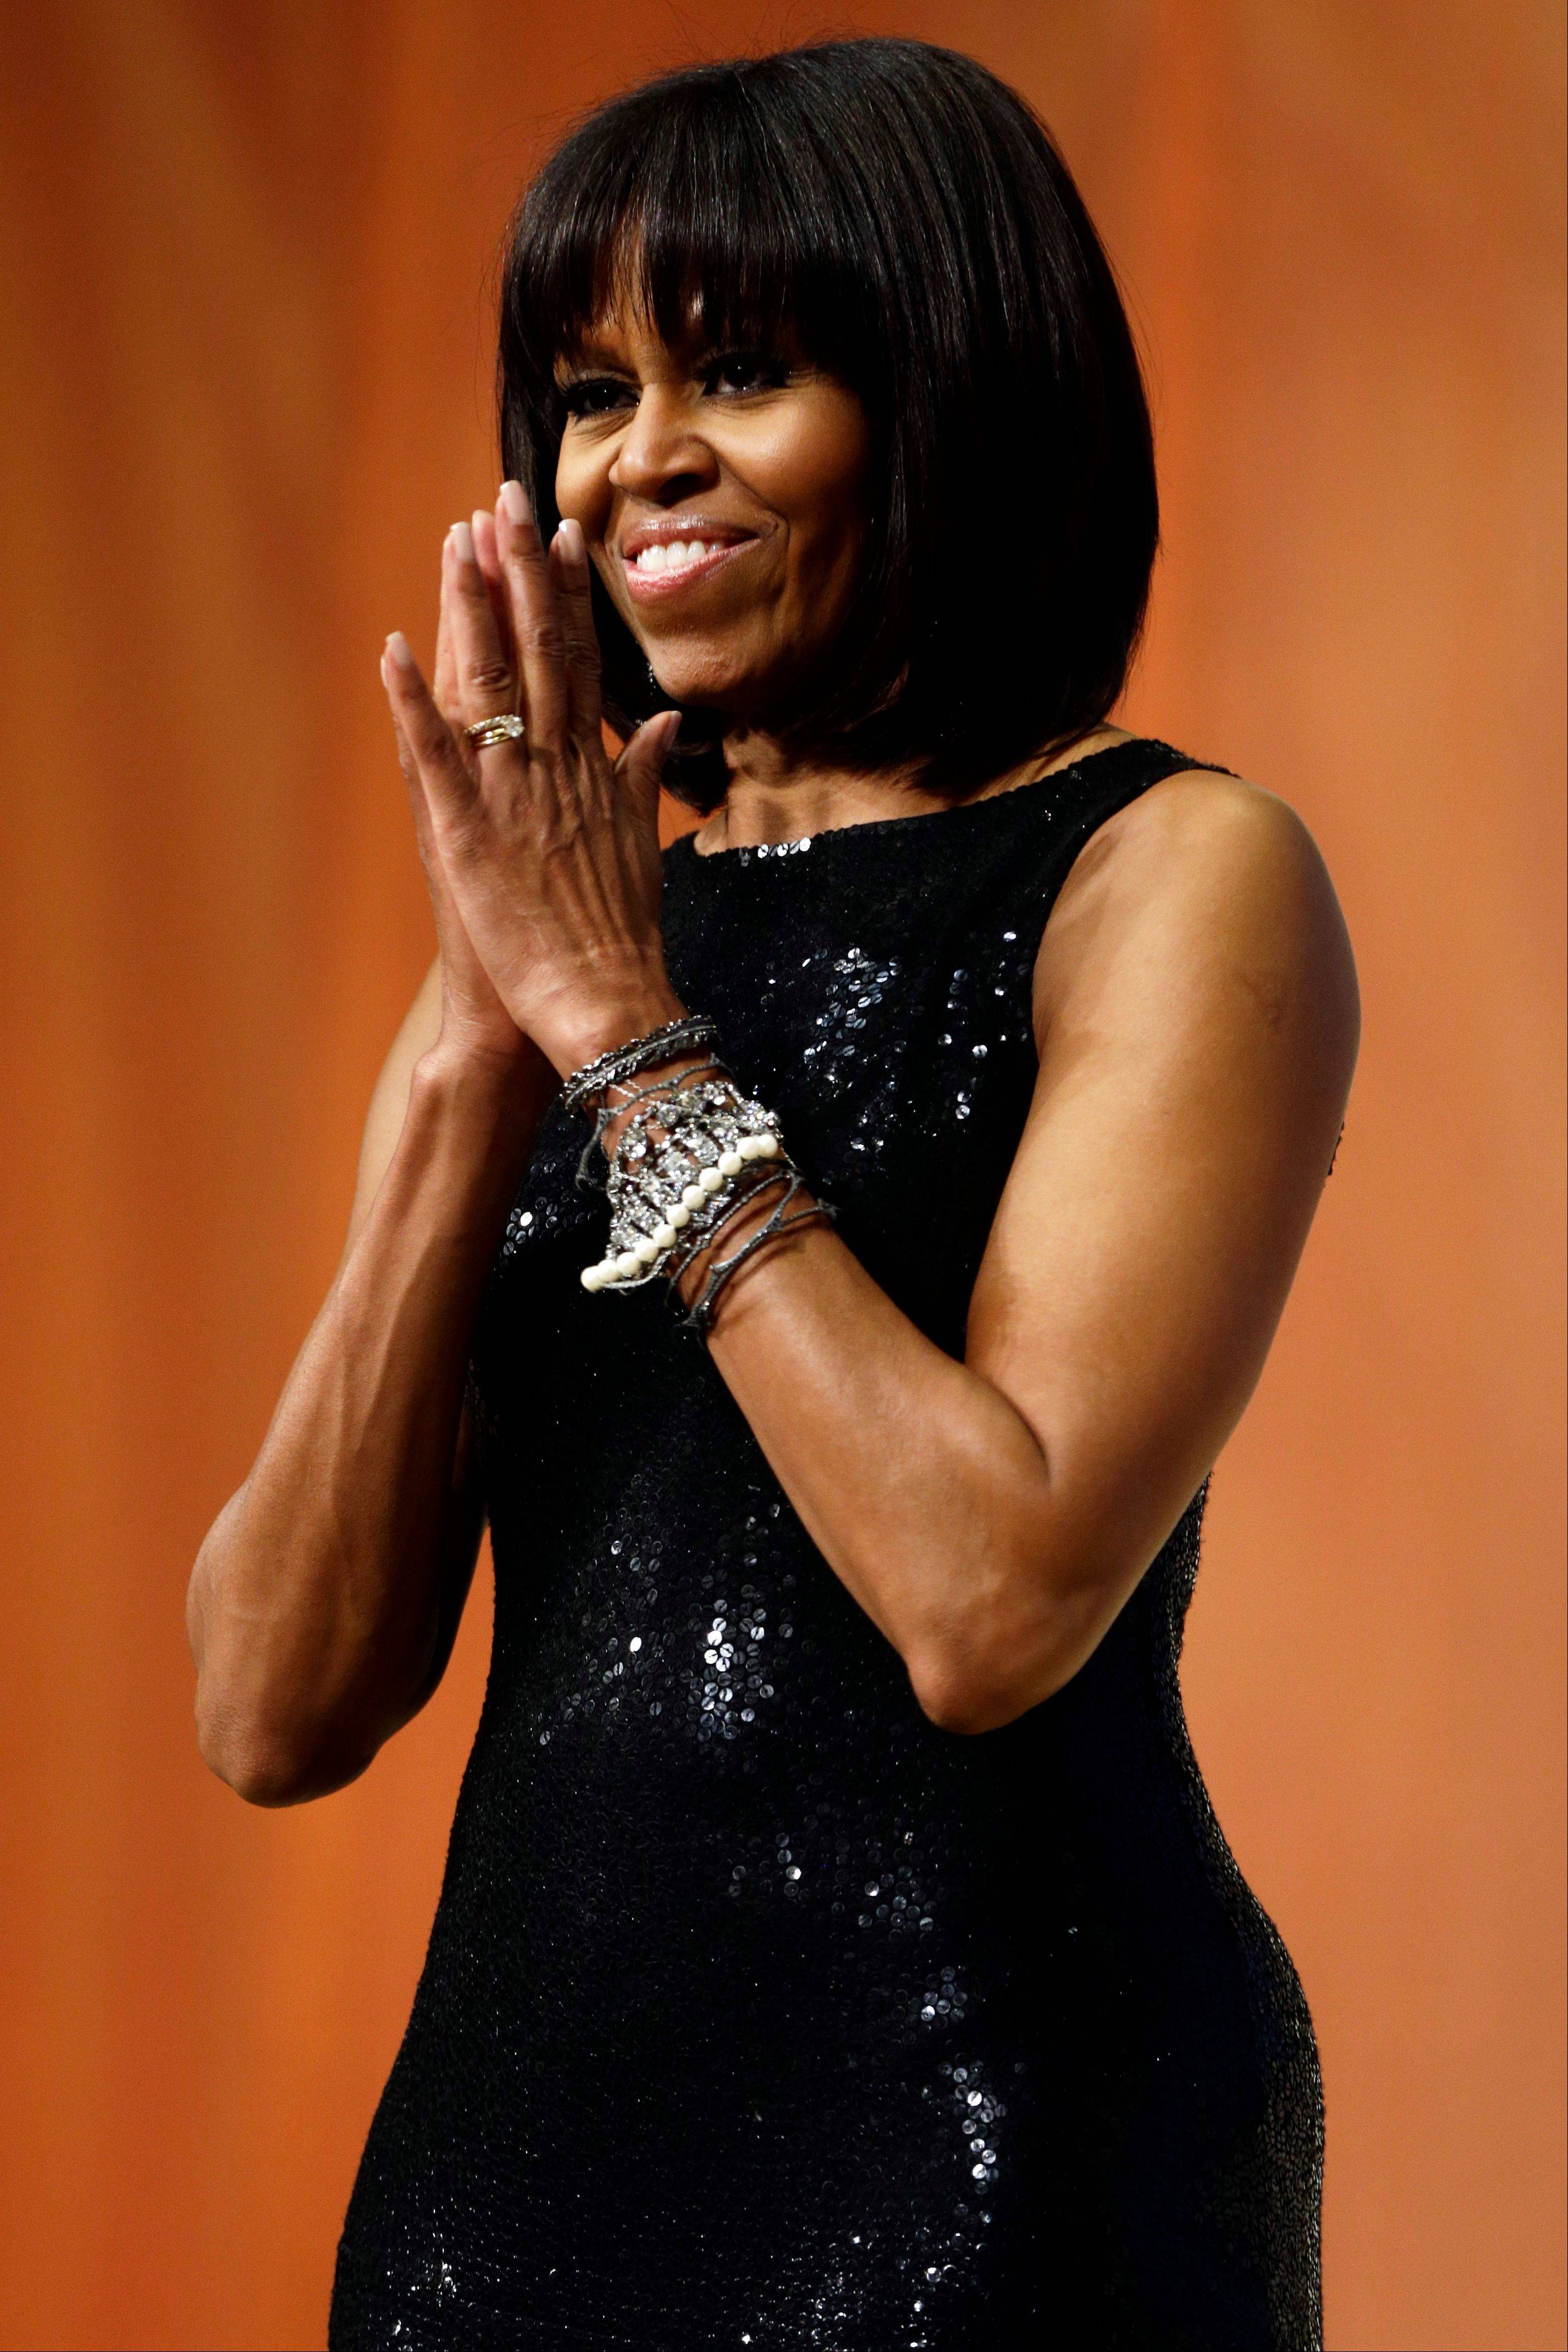 ASSOCIATED PRESSFirst lady Michelle Obama acknowledges the crowd as President Obama speaks to supporters and donors at an inaugural reception for the 57th Presidential Inauguration at The National Building Museum in Washington on Sunday.